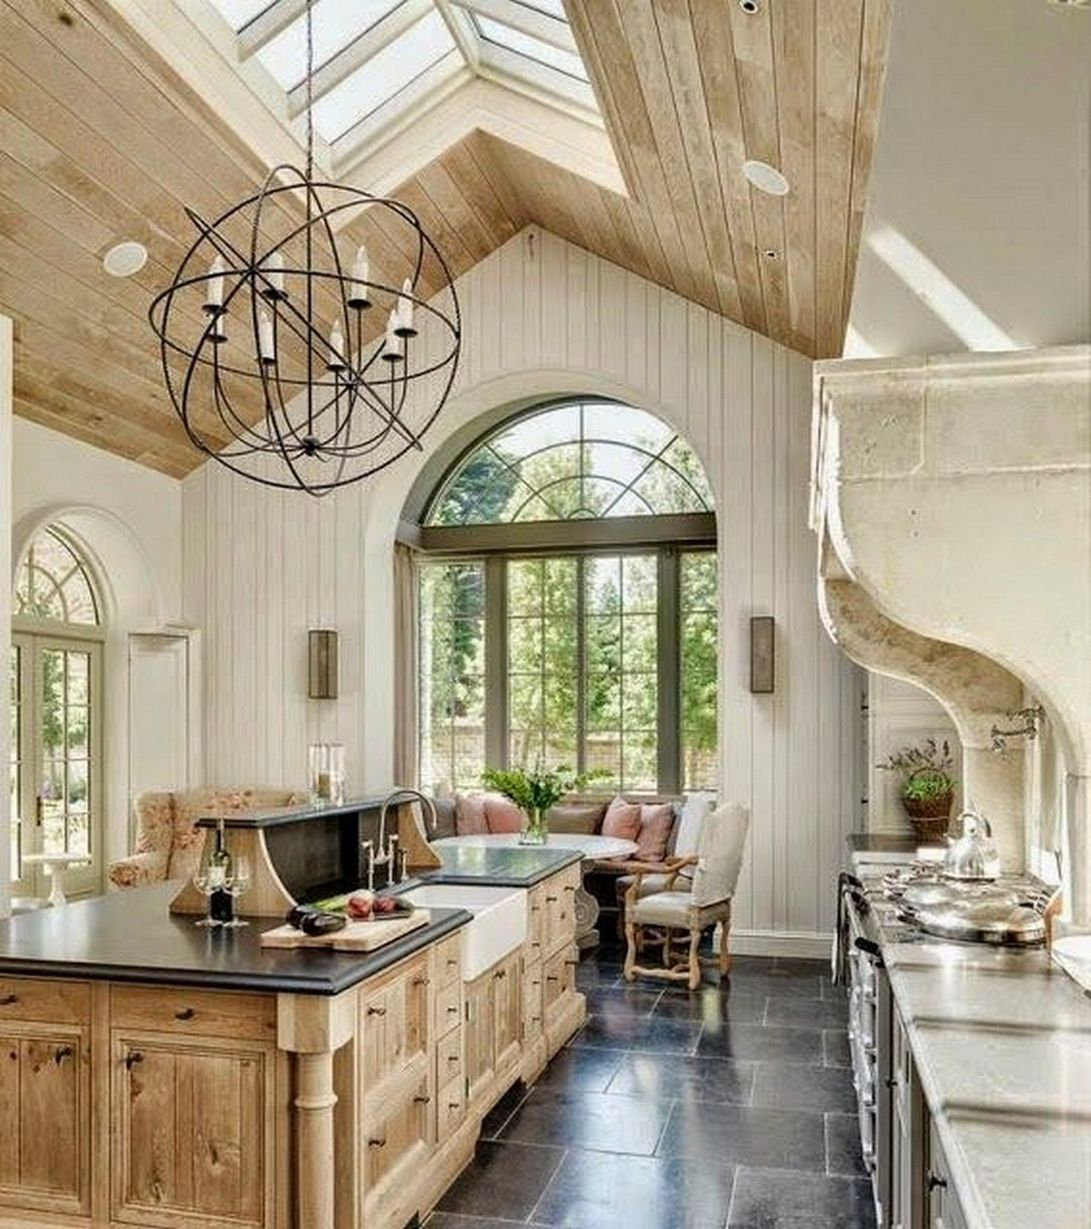 50 Best French Country Kitchens Design Ideas U0026 Remodel Pict  Http://decorspace.net/50 Best French Country Kitchens Design  Ideas Remodel Pict/ Idea